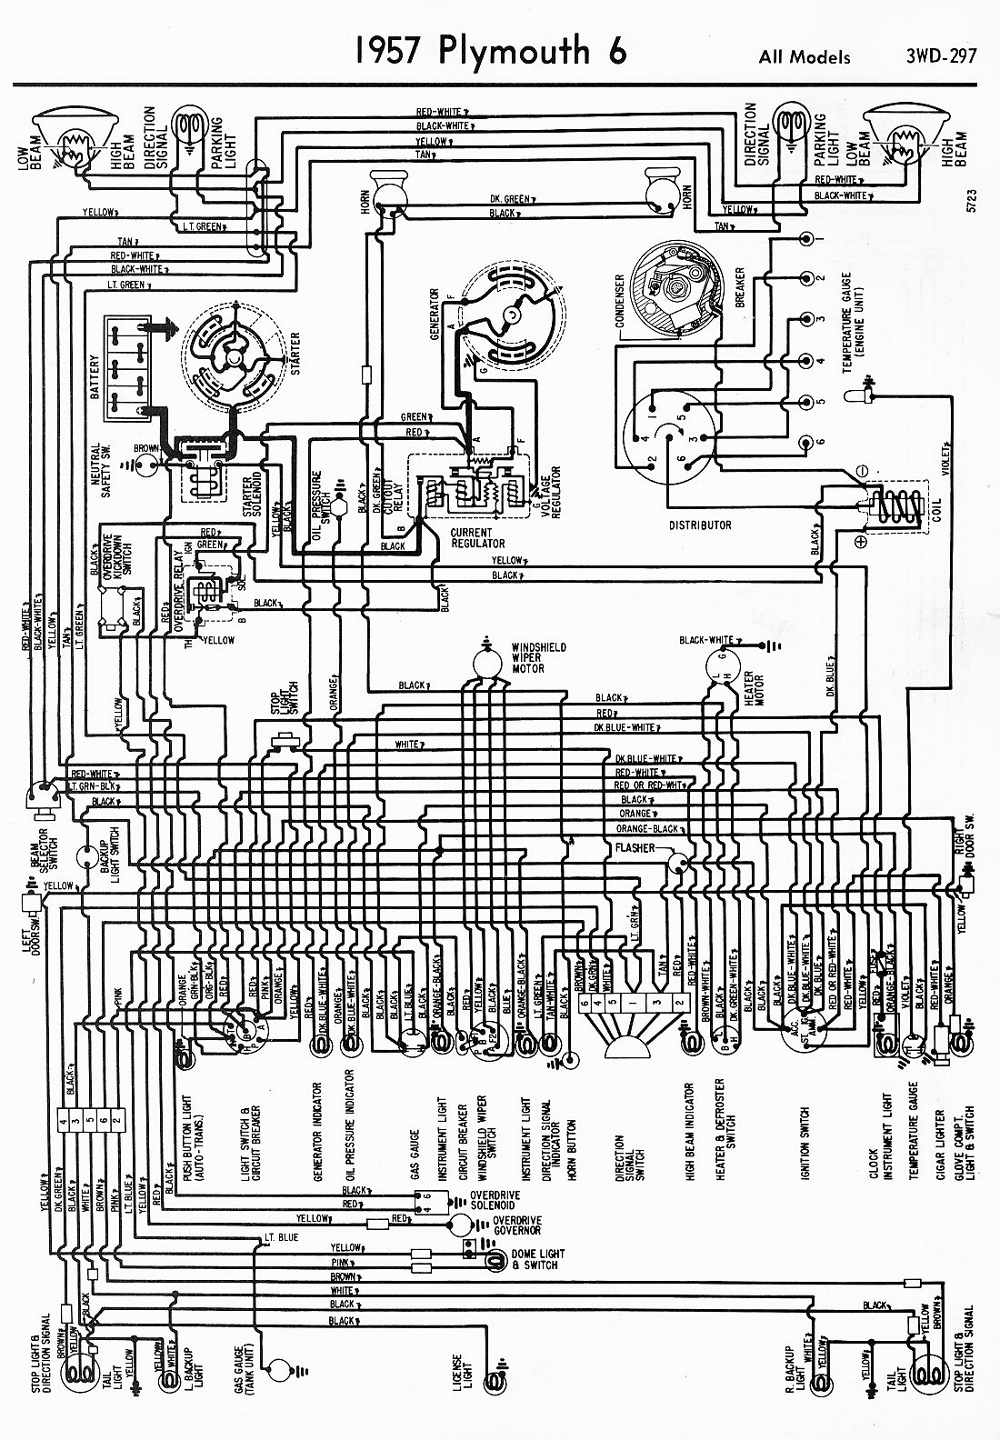 1957 dodge wiring diagram wiring diagram blogs 2017 dodge wiring diagram 1957 dodge wiring diagram [ 1000 x 1440 Pixel ]